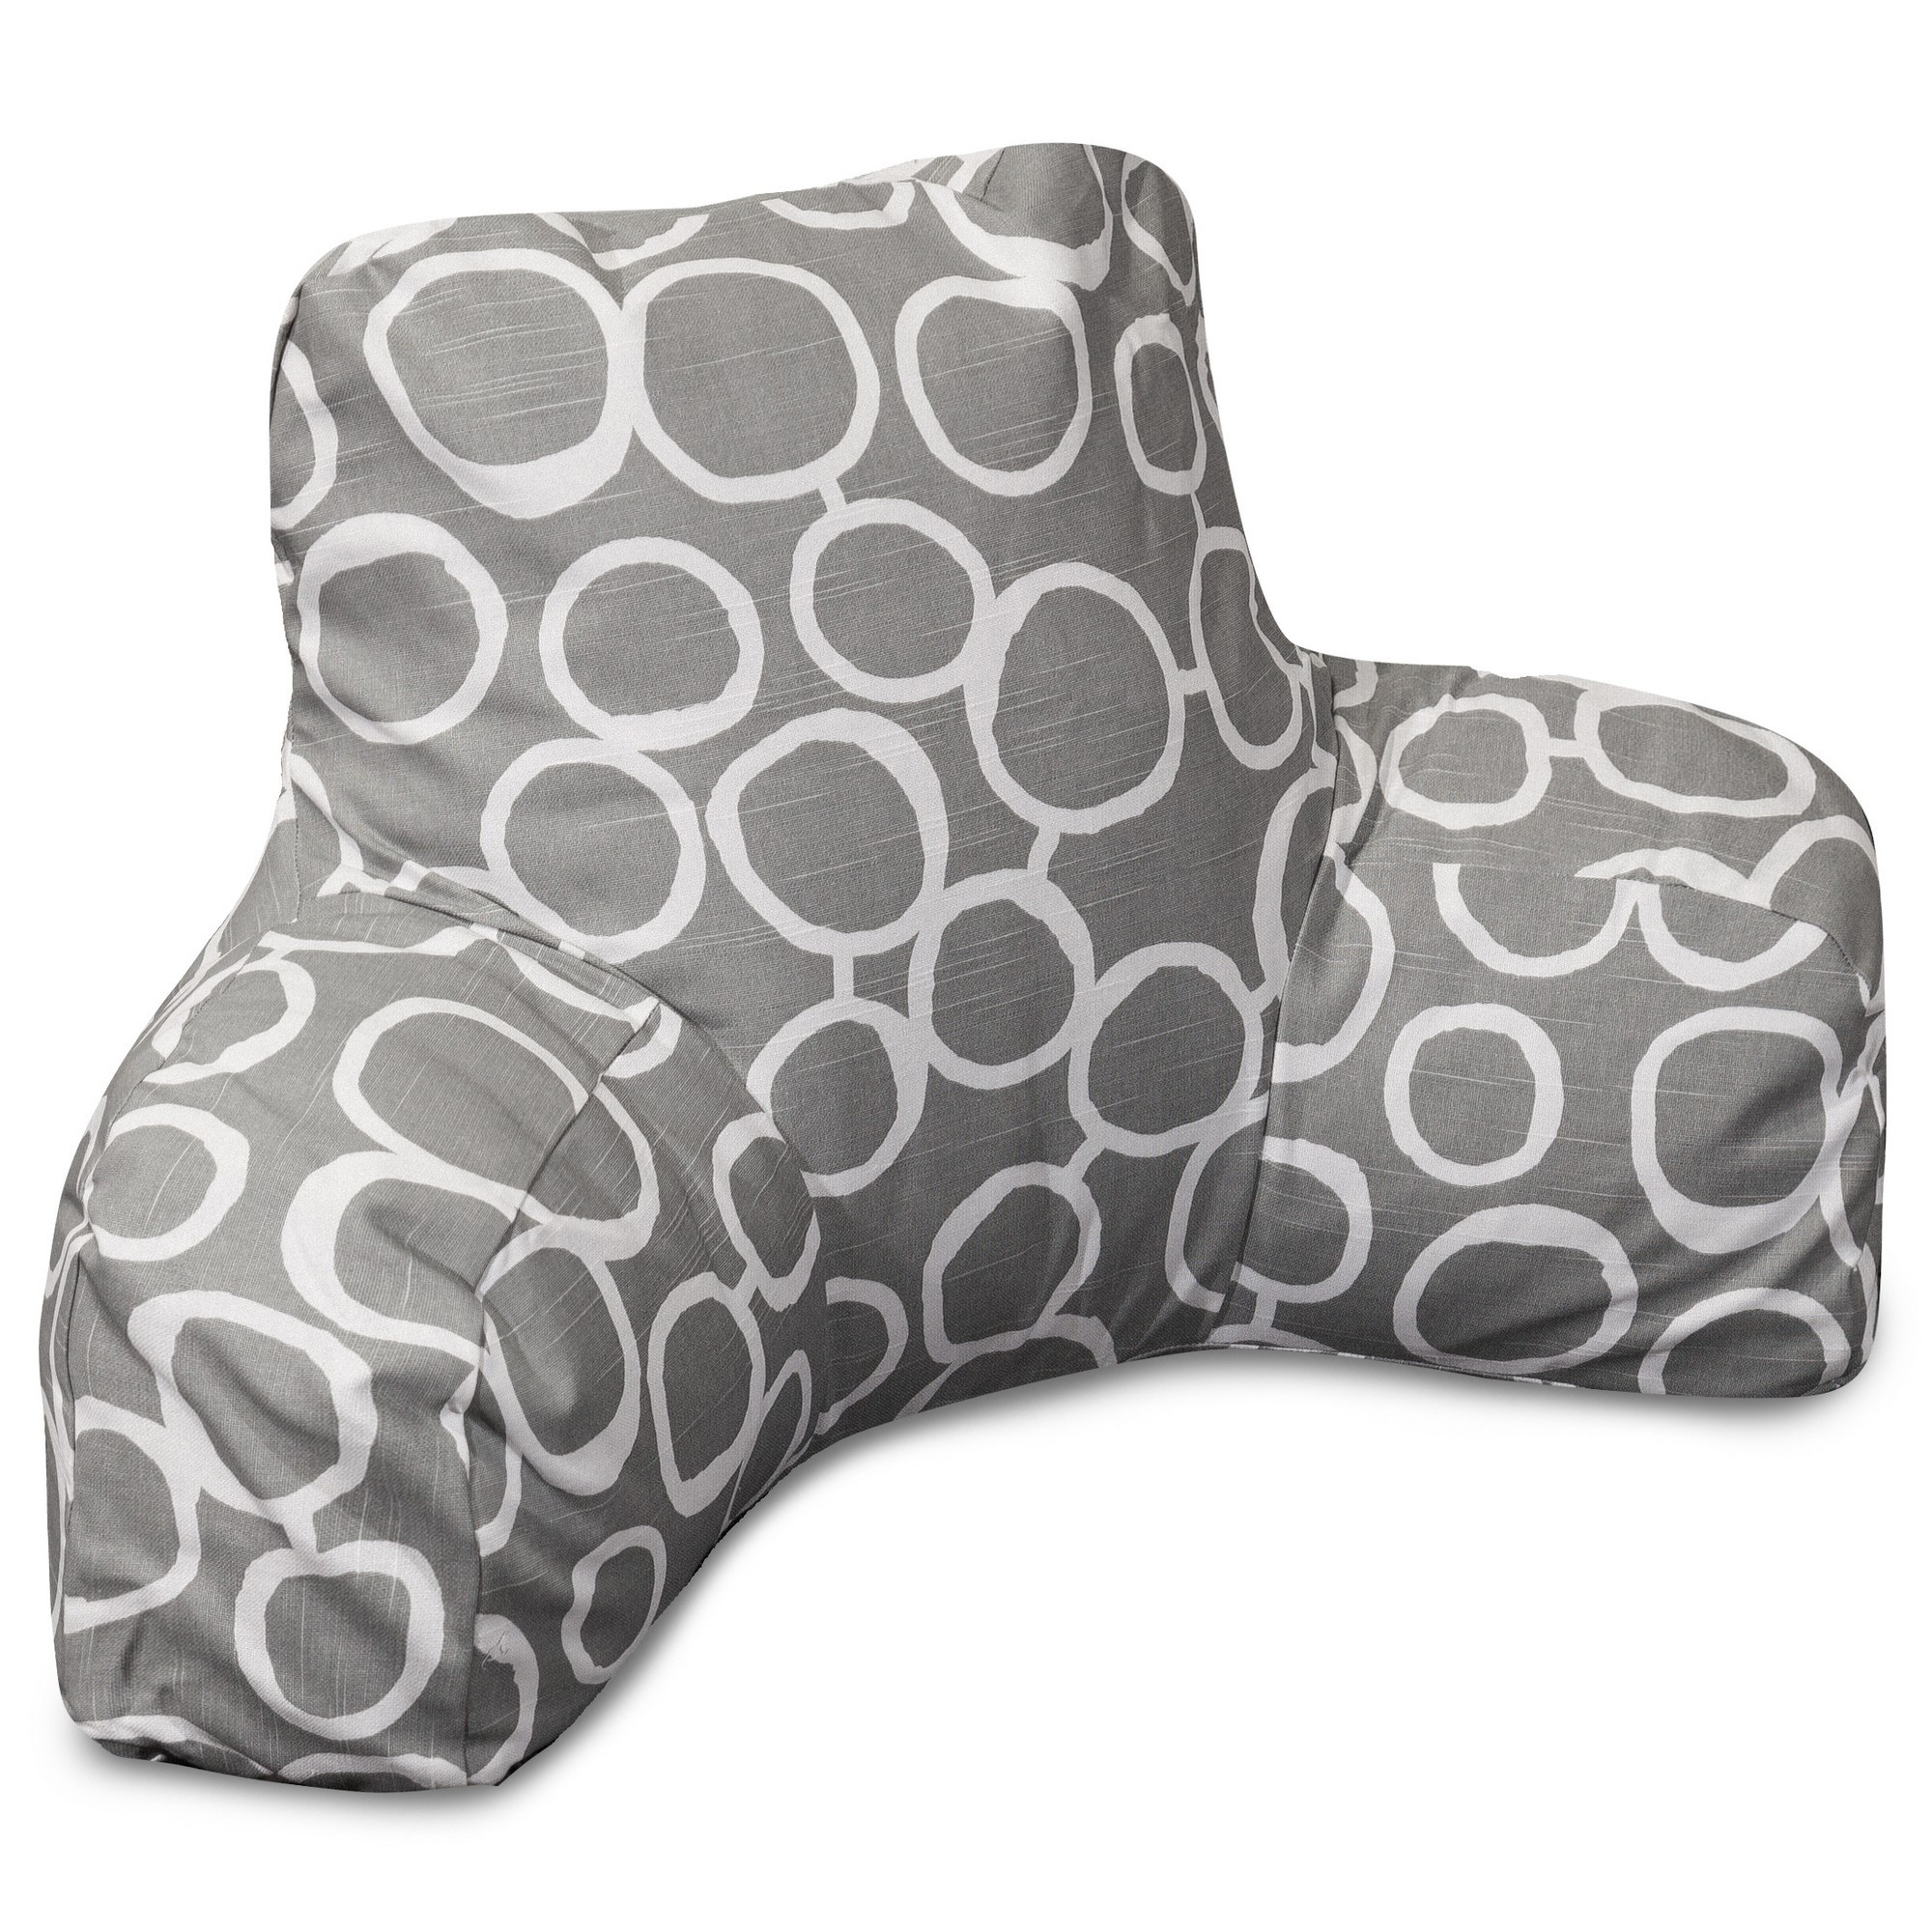 Majestic Home Goods Indoor Gray Fusion Reading Pillow with Arms Backrest Back Support for Sitting 33 in L x 6 in W x 18 in H